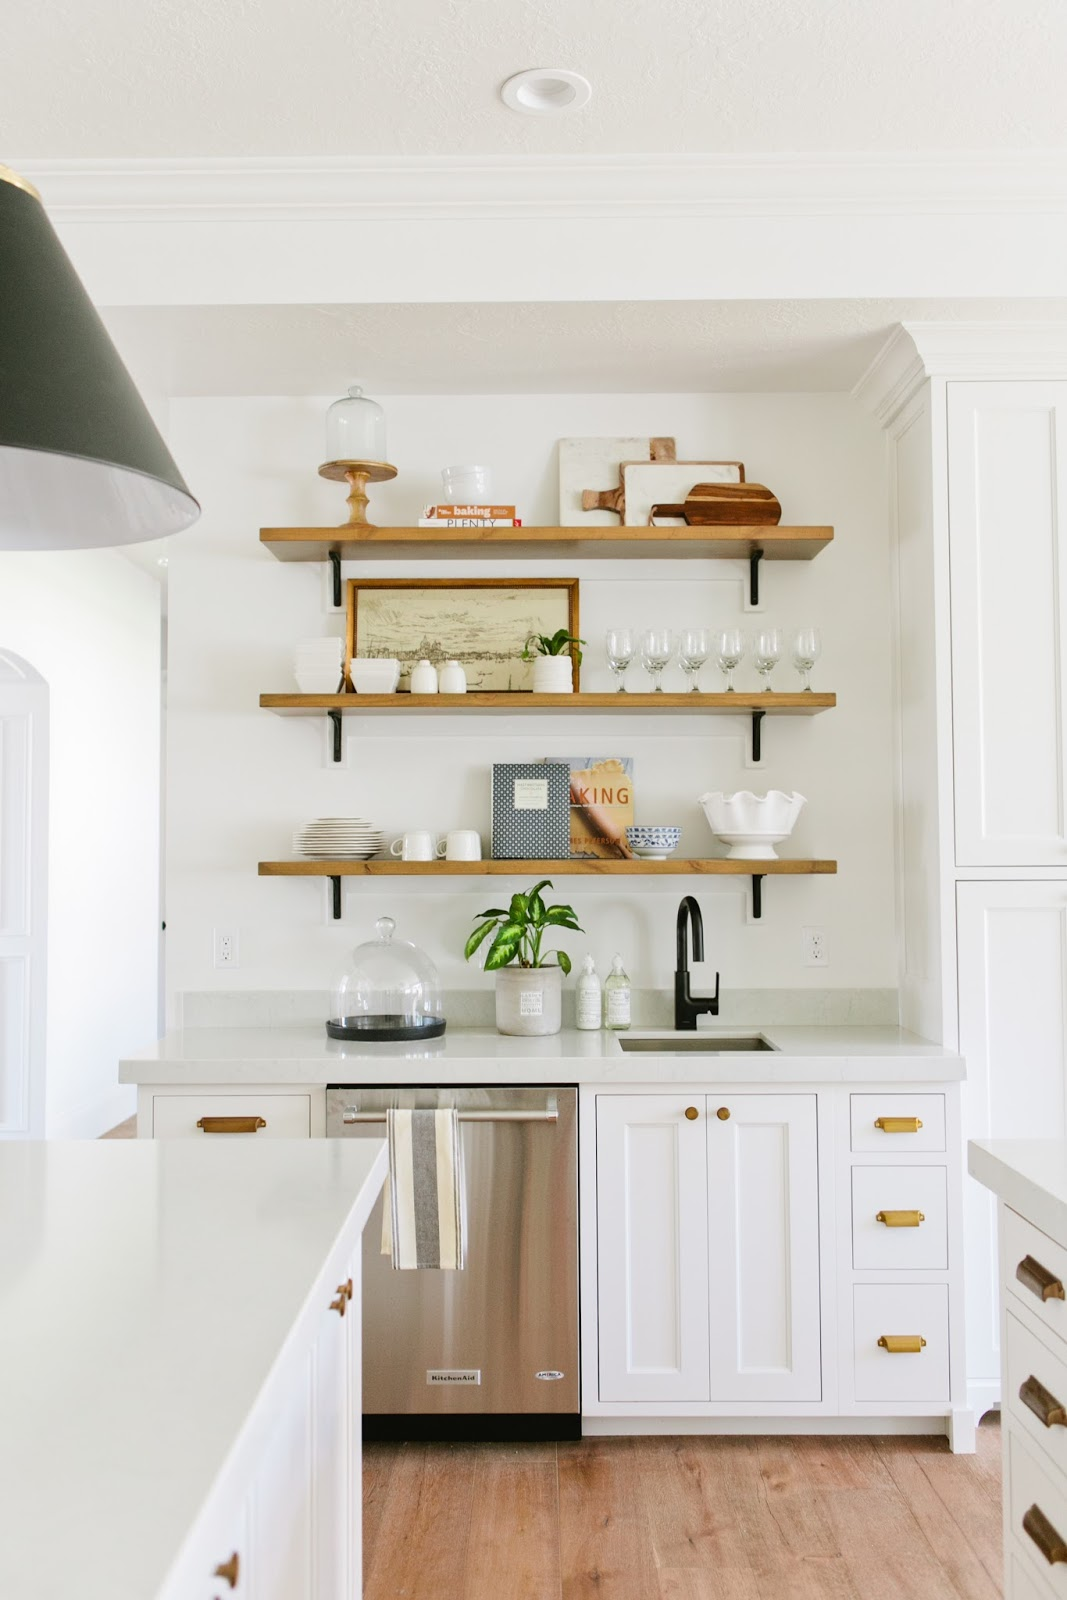 Kitchen decor inspiration 42 modern farmhouse kitchens for Kitchen decor inspiration